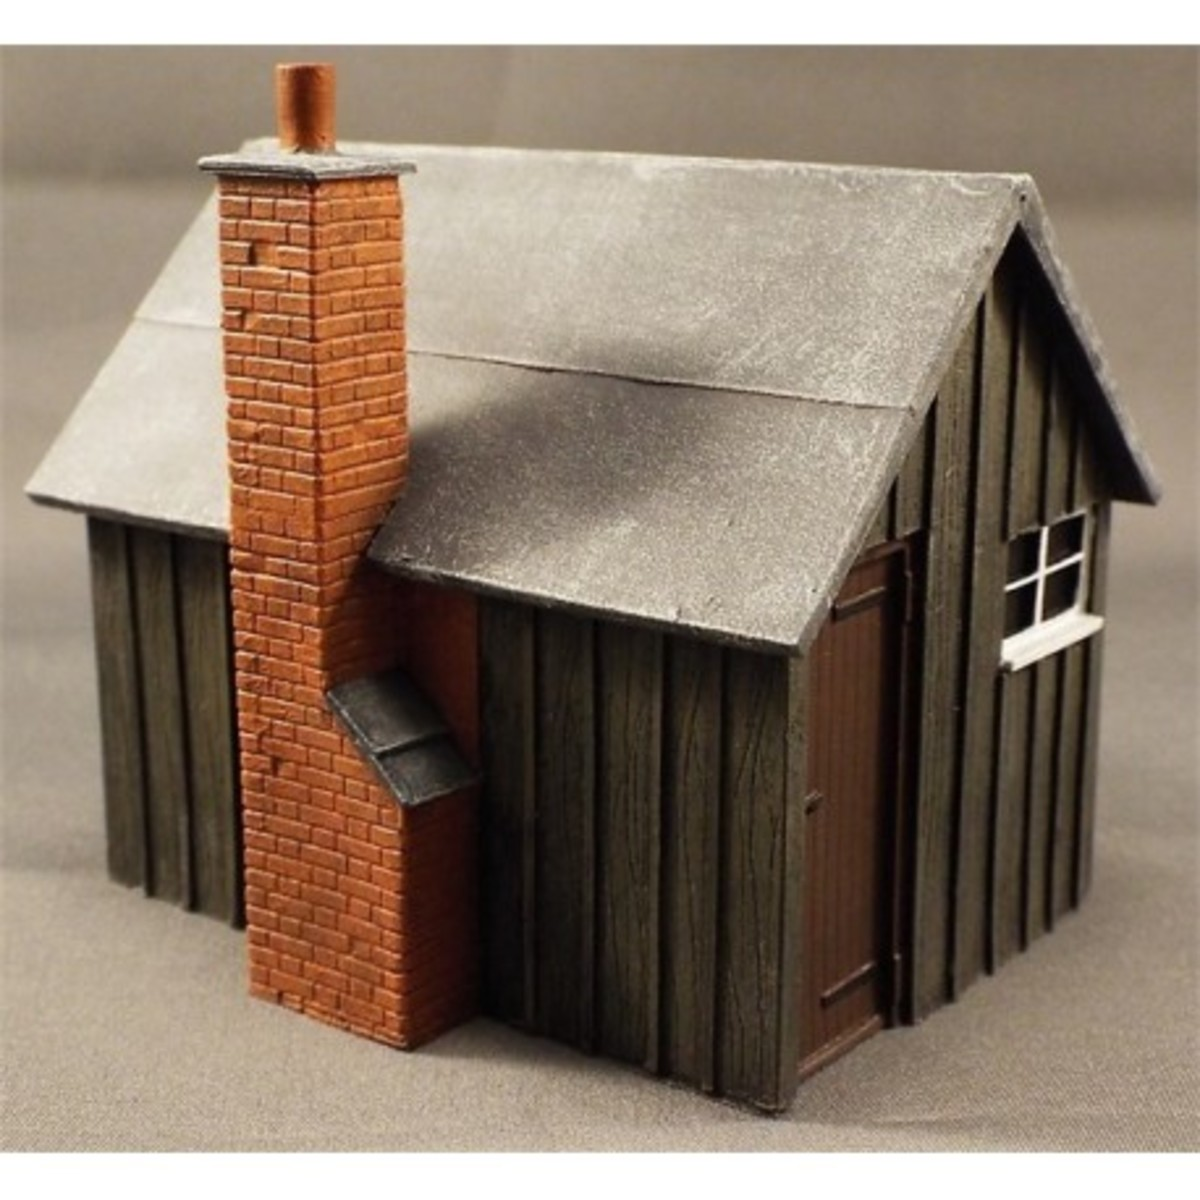 Another Ratio product you'd find anywhere from Penzance to Perth, a sleeper-built platelayer's hut with brick chimney stack. Go to town on this one, 'distress' it, make it a ruin if you like, on a modern layout or paint it as new in period setting